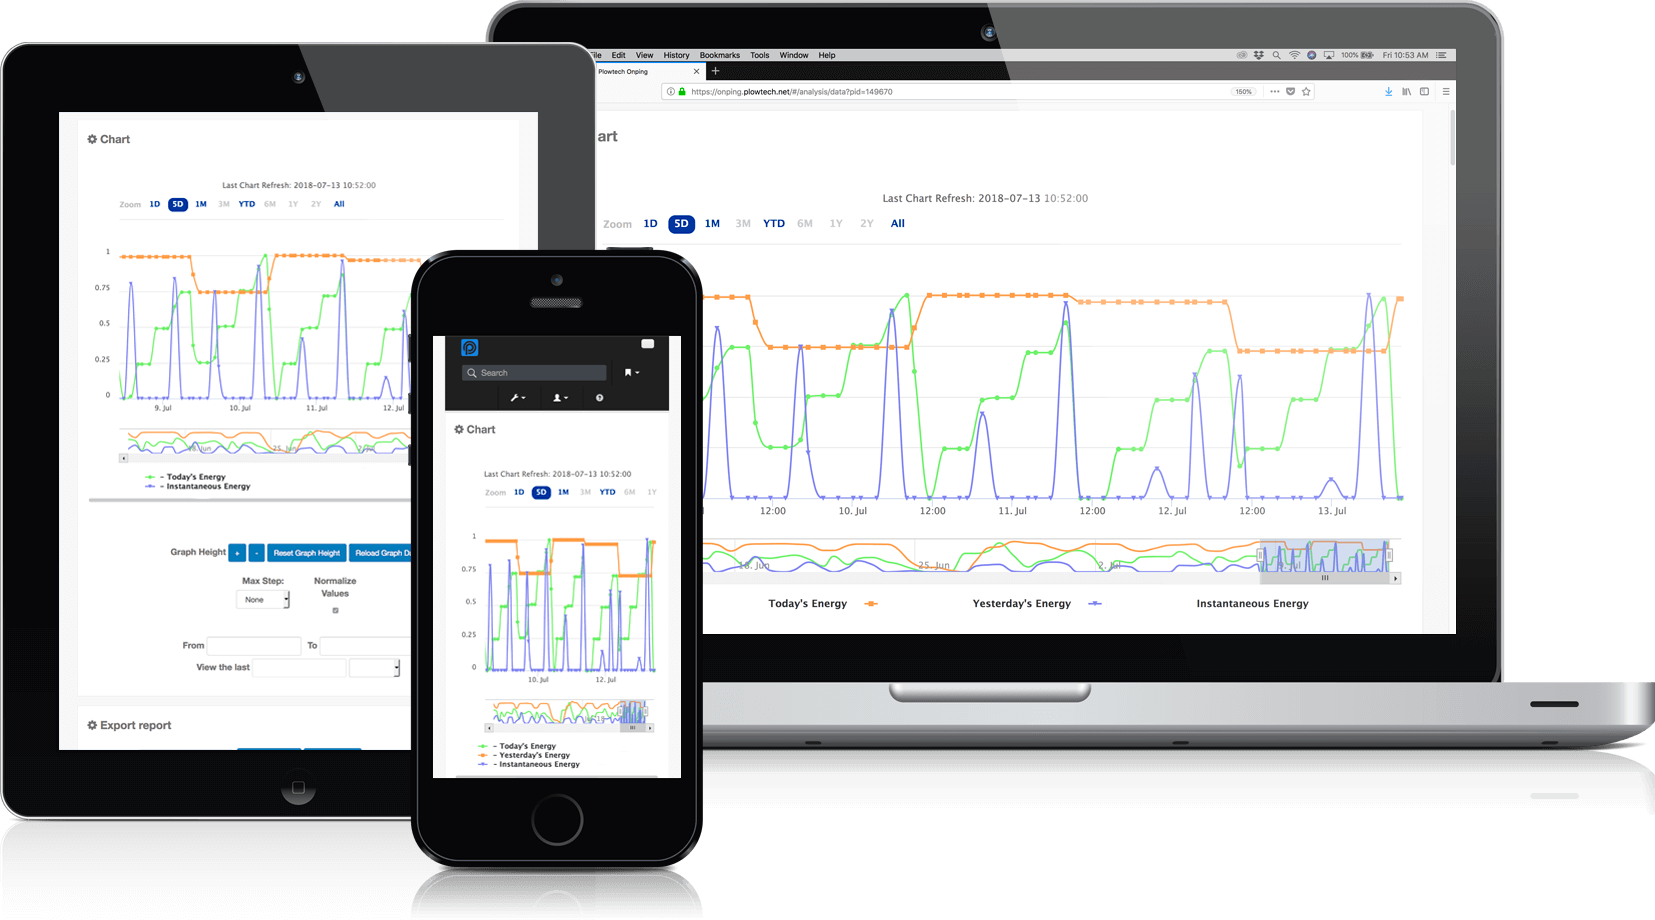 OnPing Cloud SCADA HMI Trending Data Line Graph Screen on Mobile and Desktop